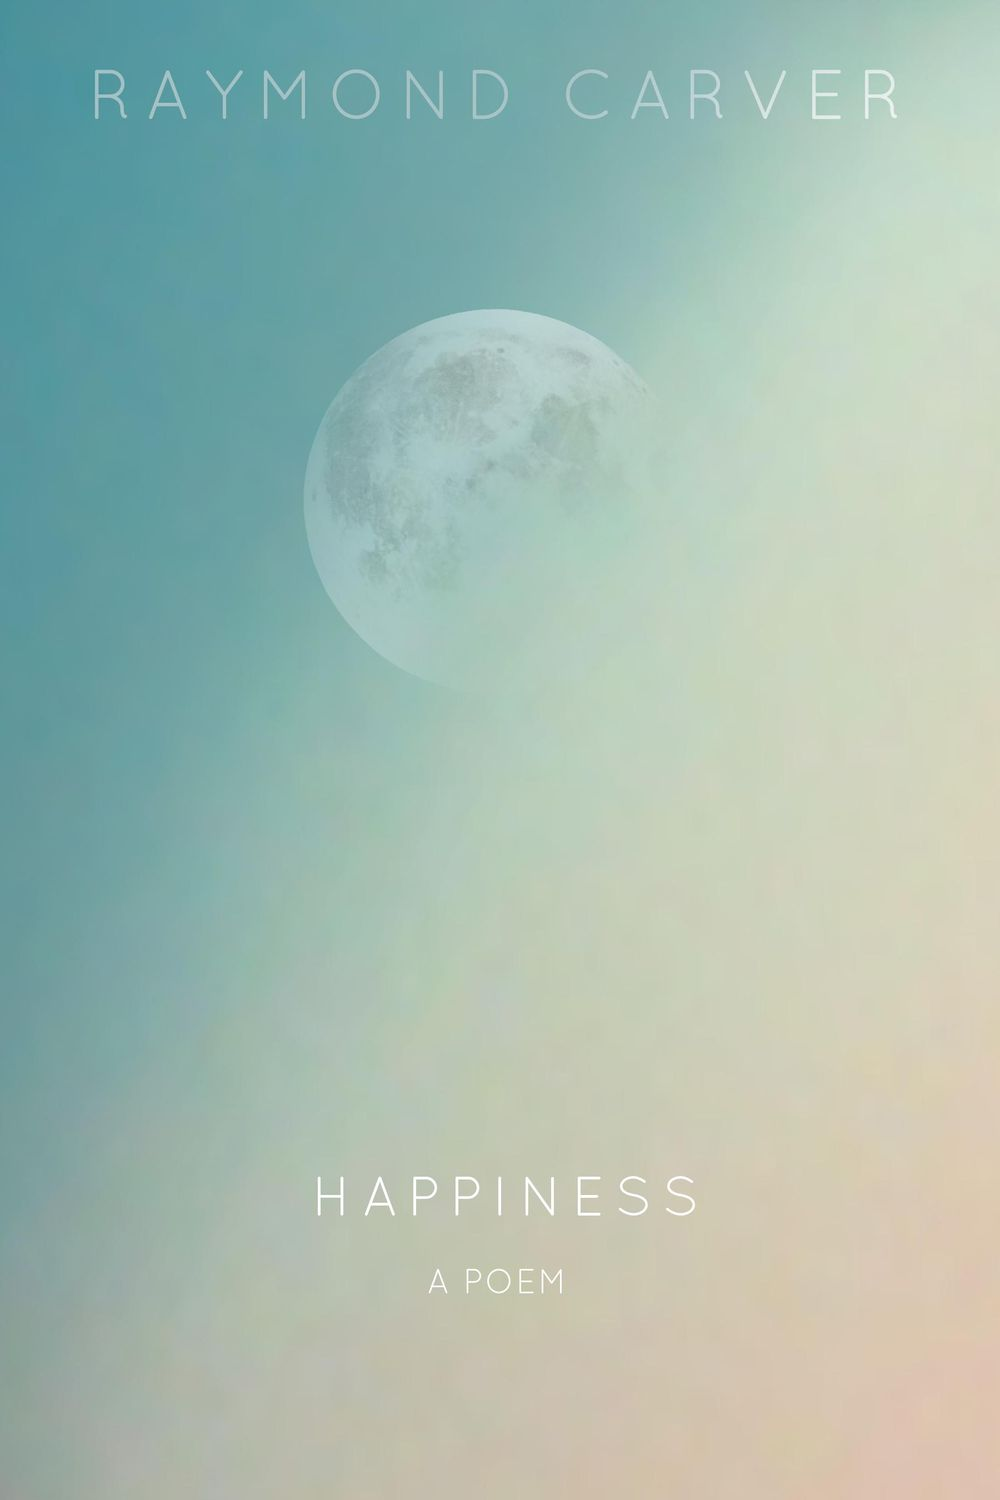 Happiness by Raymond Carver - image 4 - student project